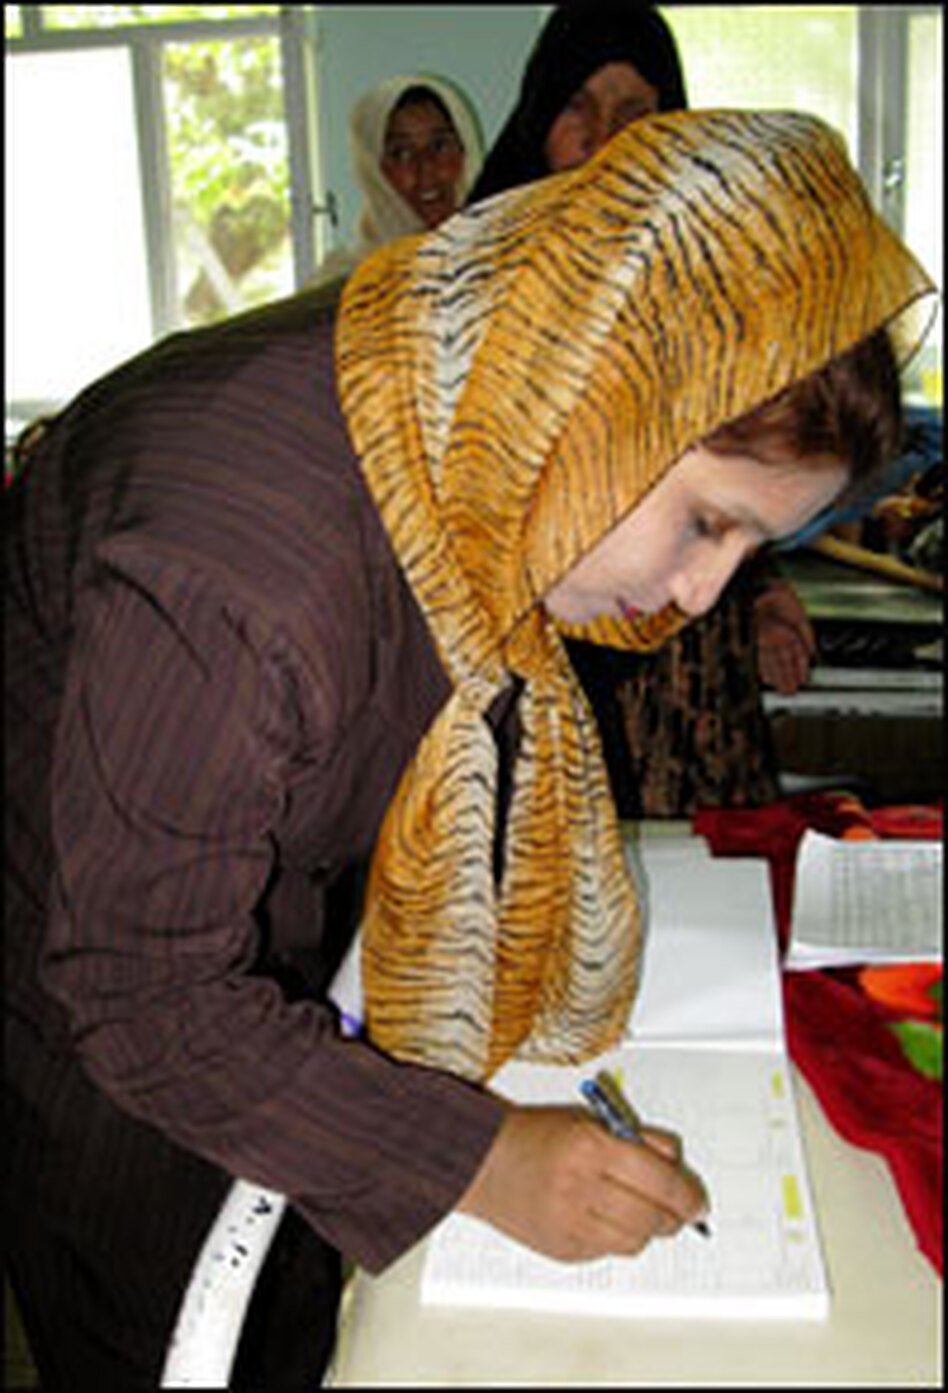 Hospital worker Mahbooba fills out a birth certificate for a newborn baby in Kabul.